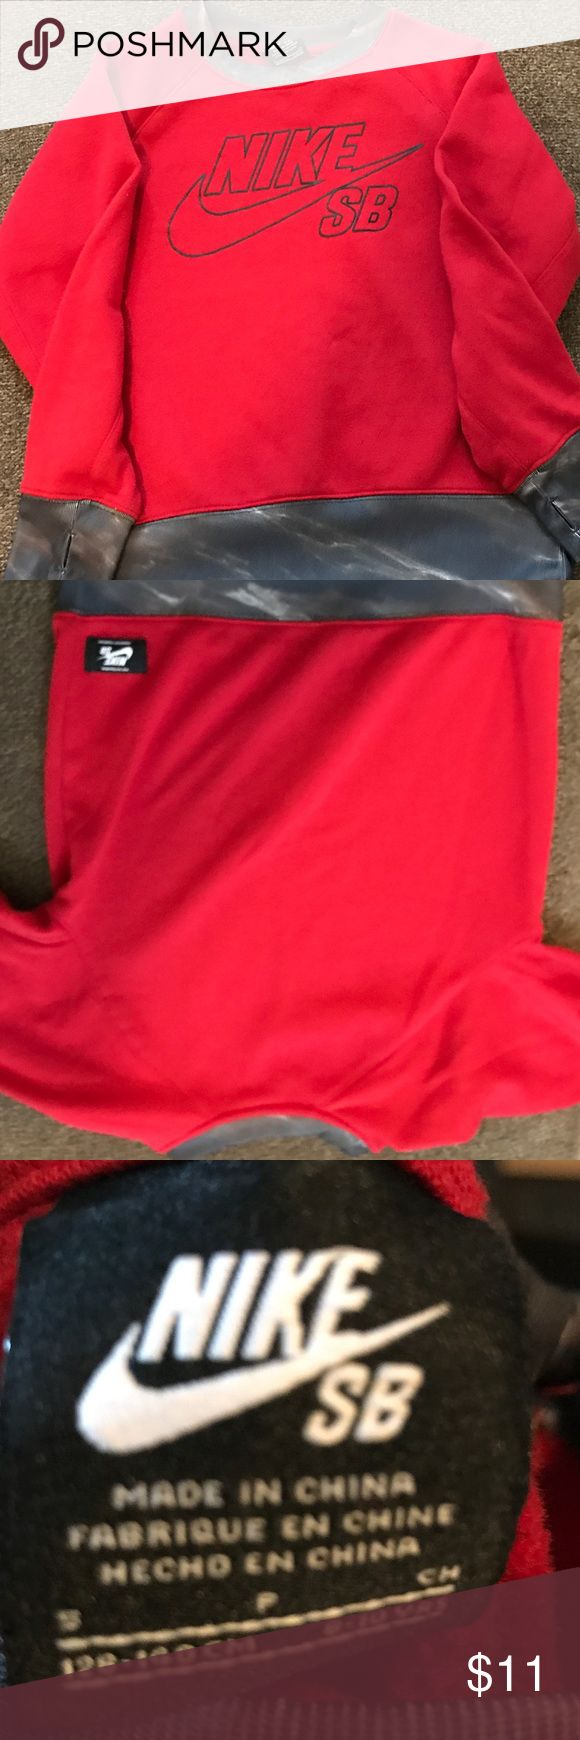 Nike Sweatshirt Red Nike Sweatshirt !!!!! Nike Shirts & Tops Sweatshirts & Hoodies